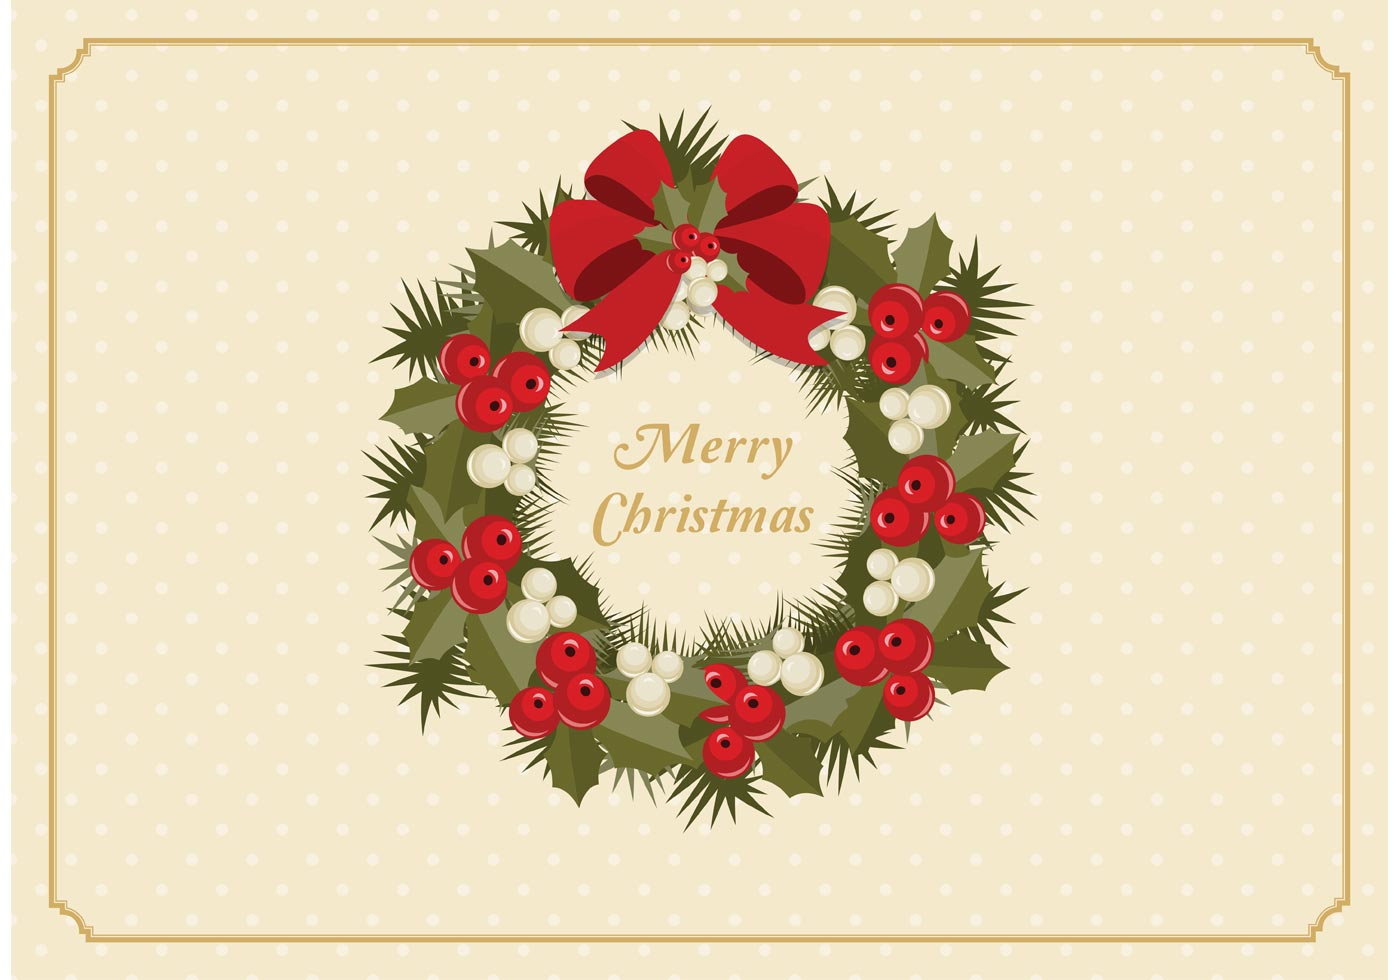 Christmas Wreath Silhouette Free.Christmas Wreath Free Vector Art 10 972 Free Downloads